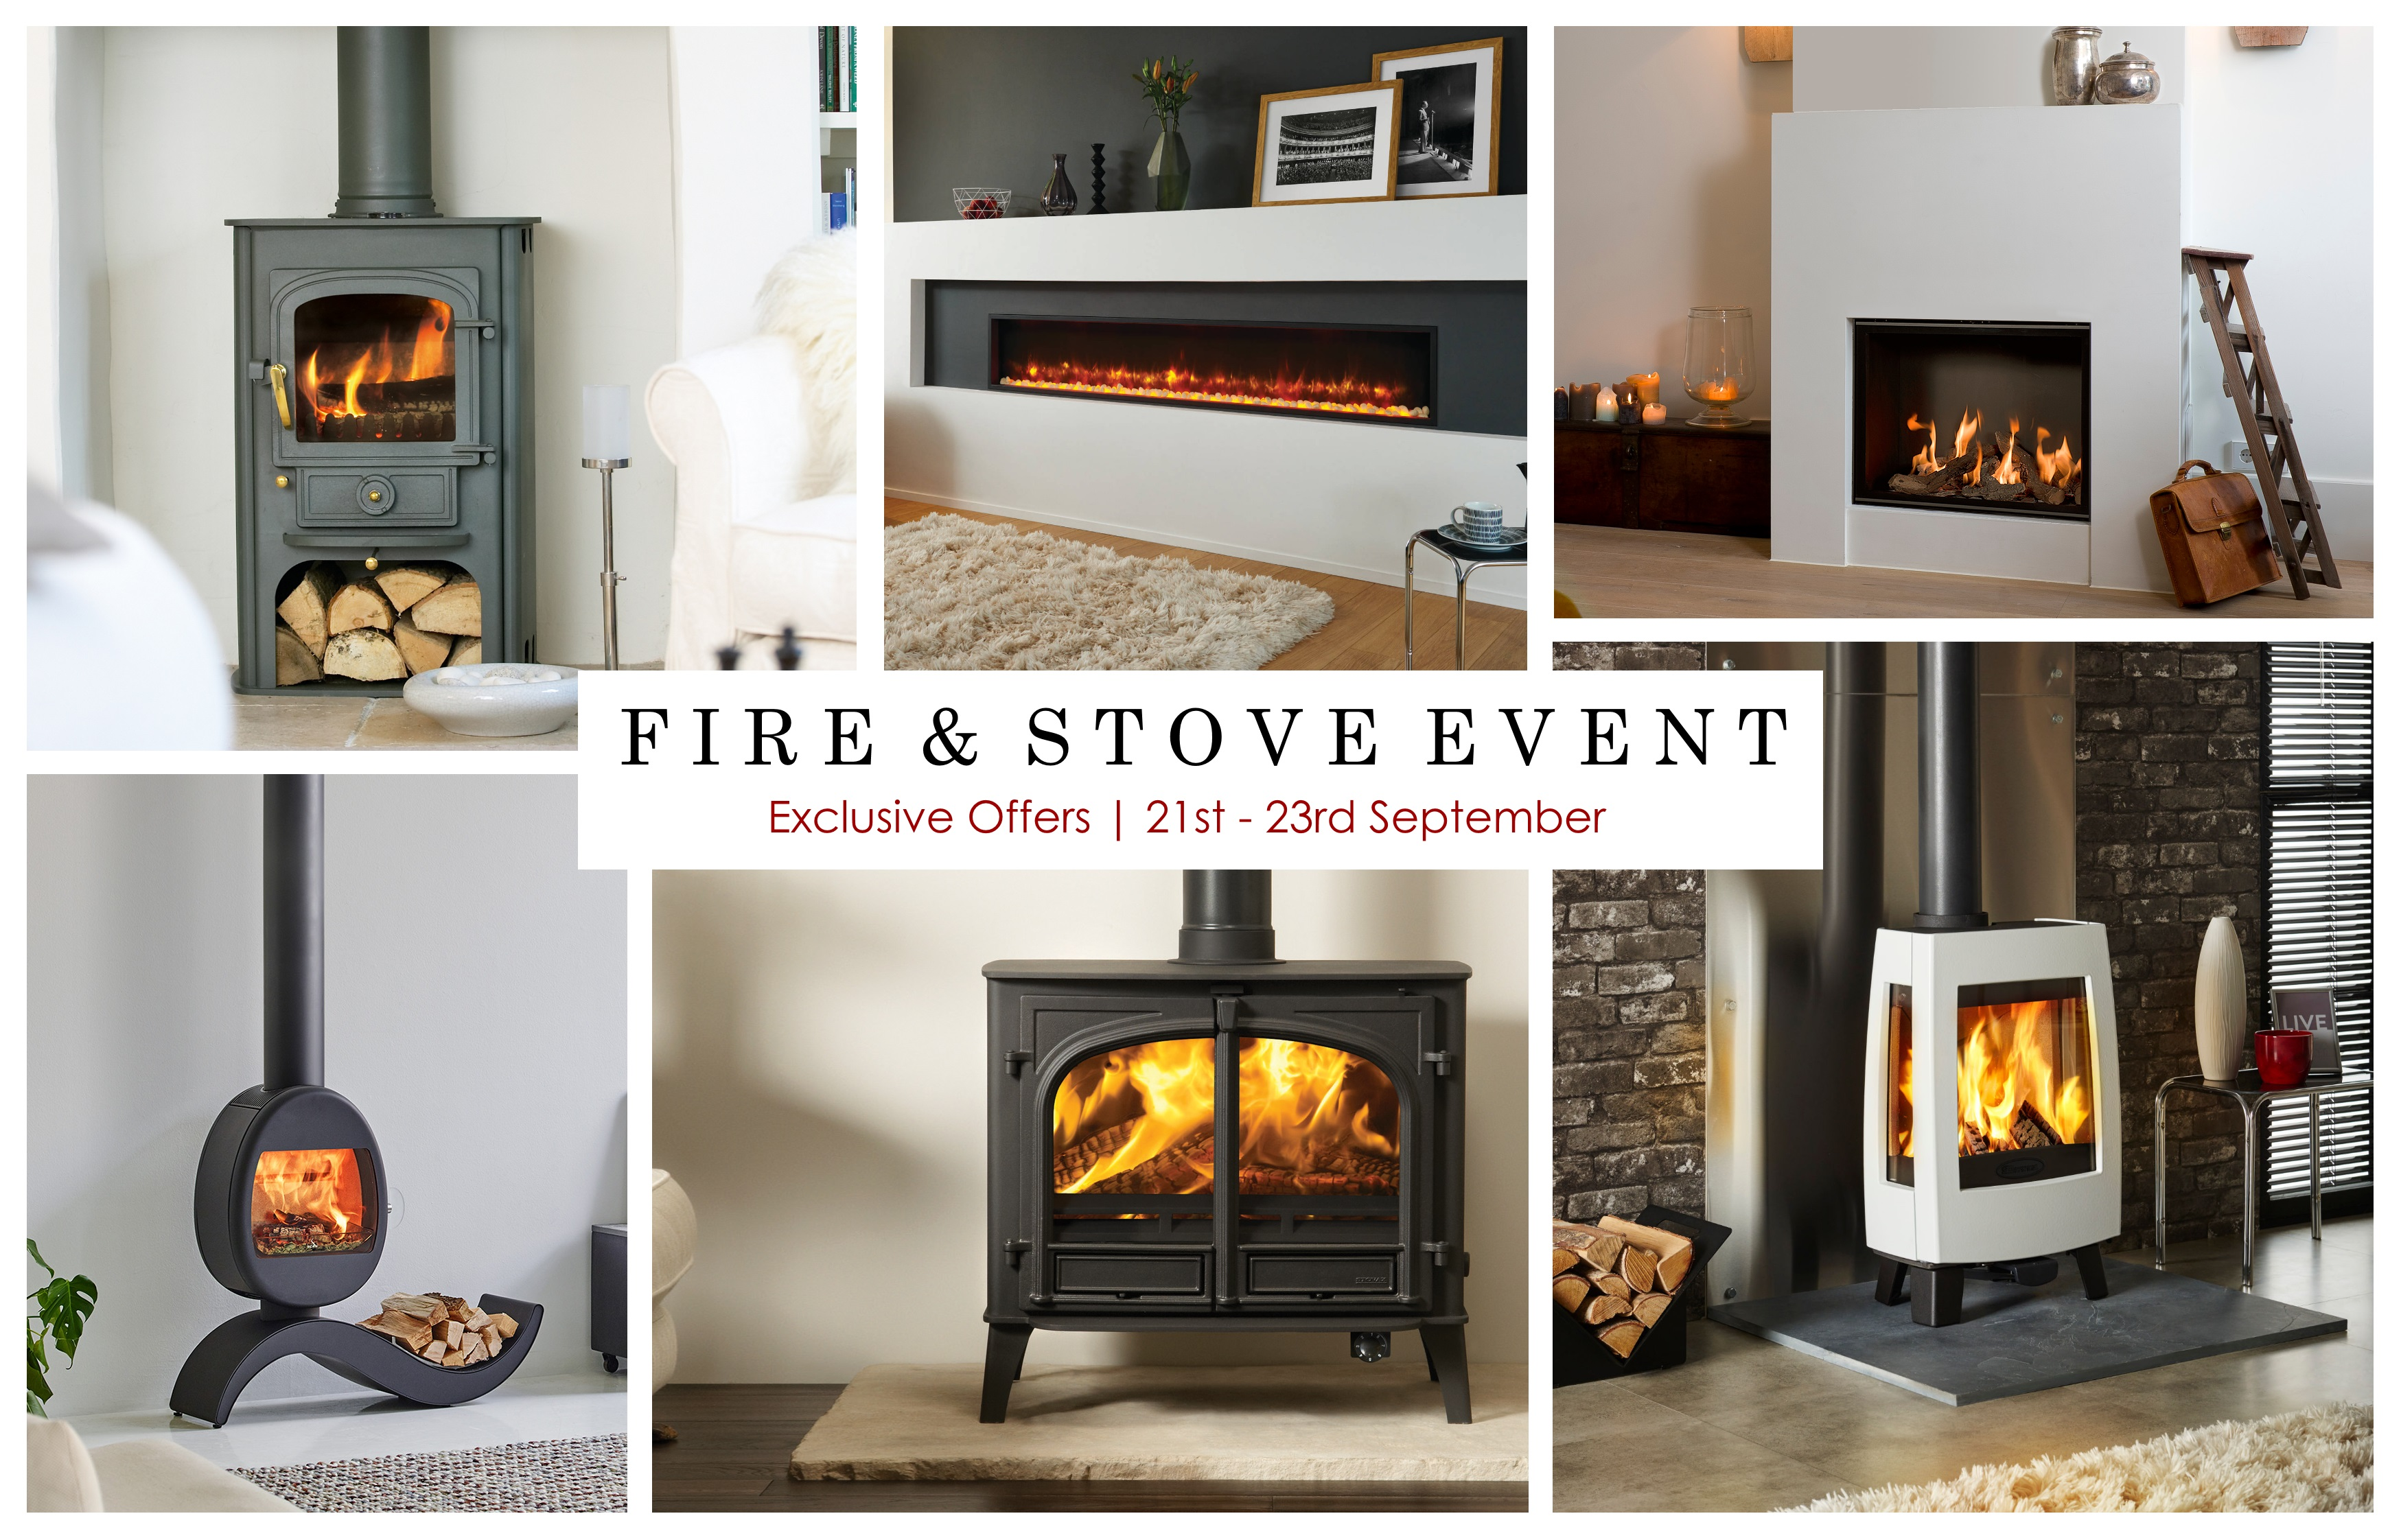 Bell fire and Stove Event Sale Exclusive Offers September 21st - 23rd